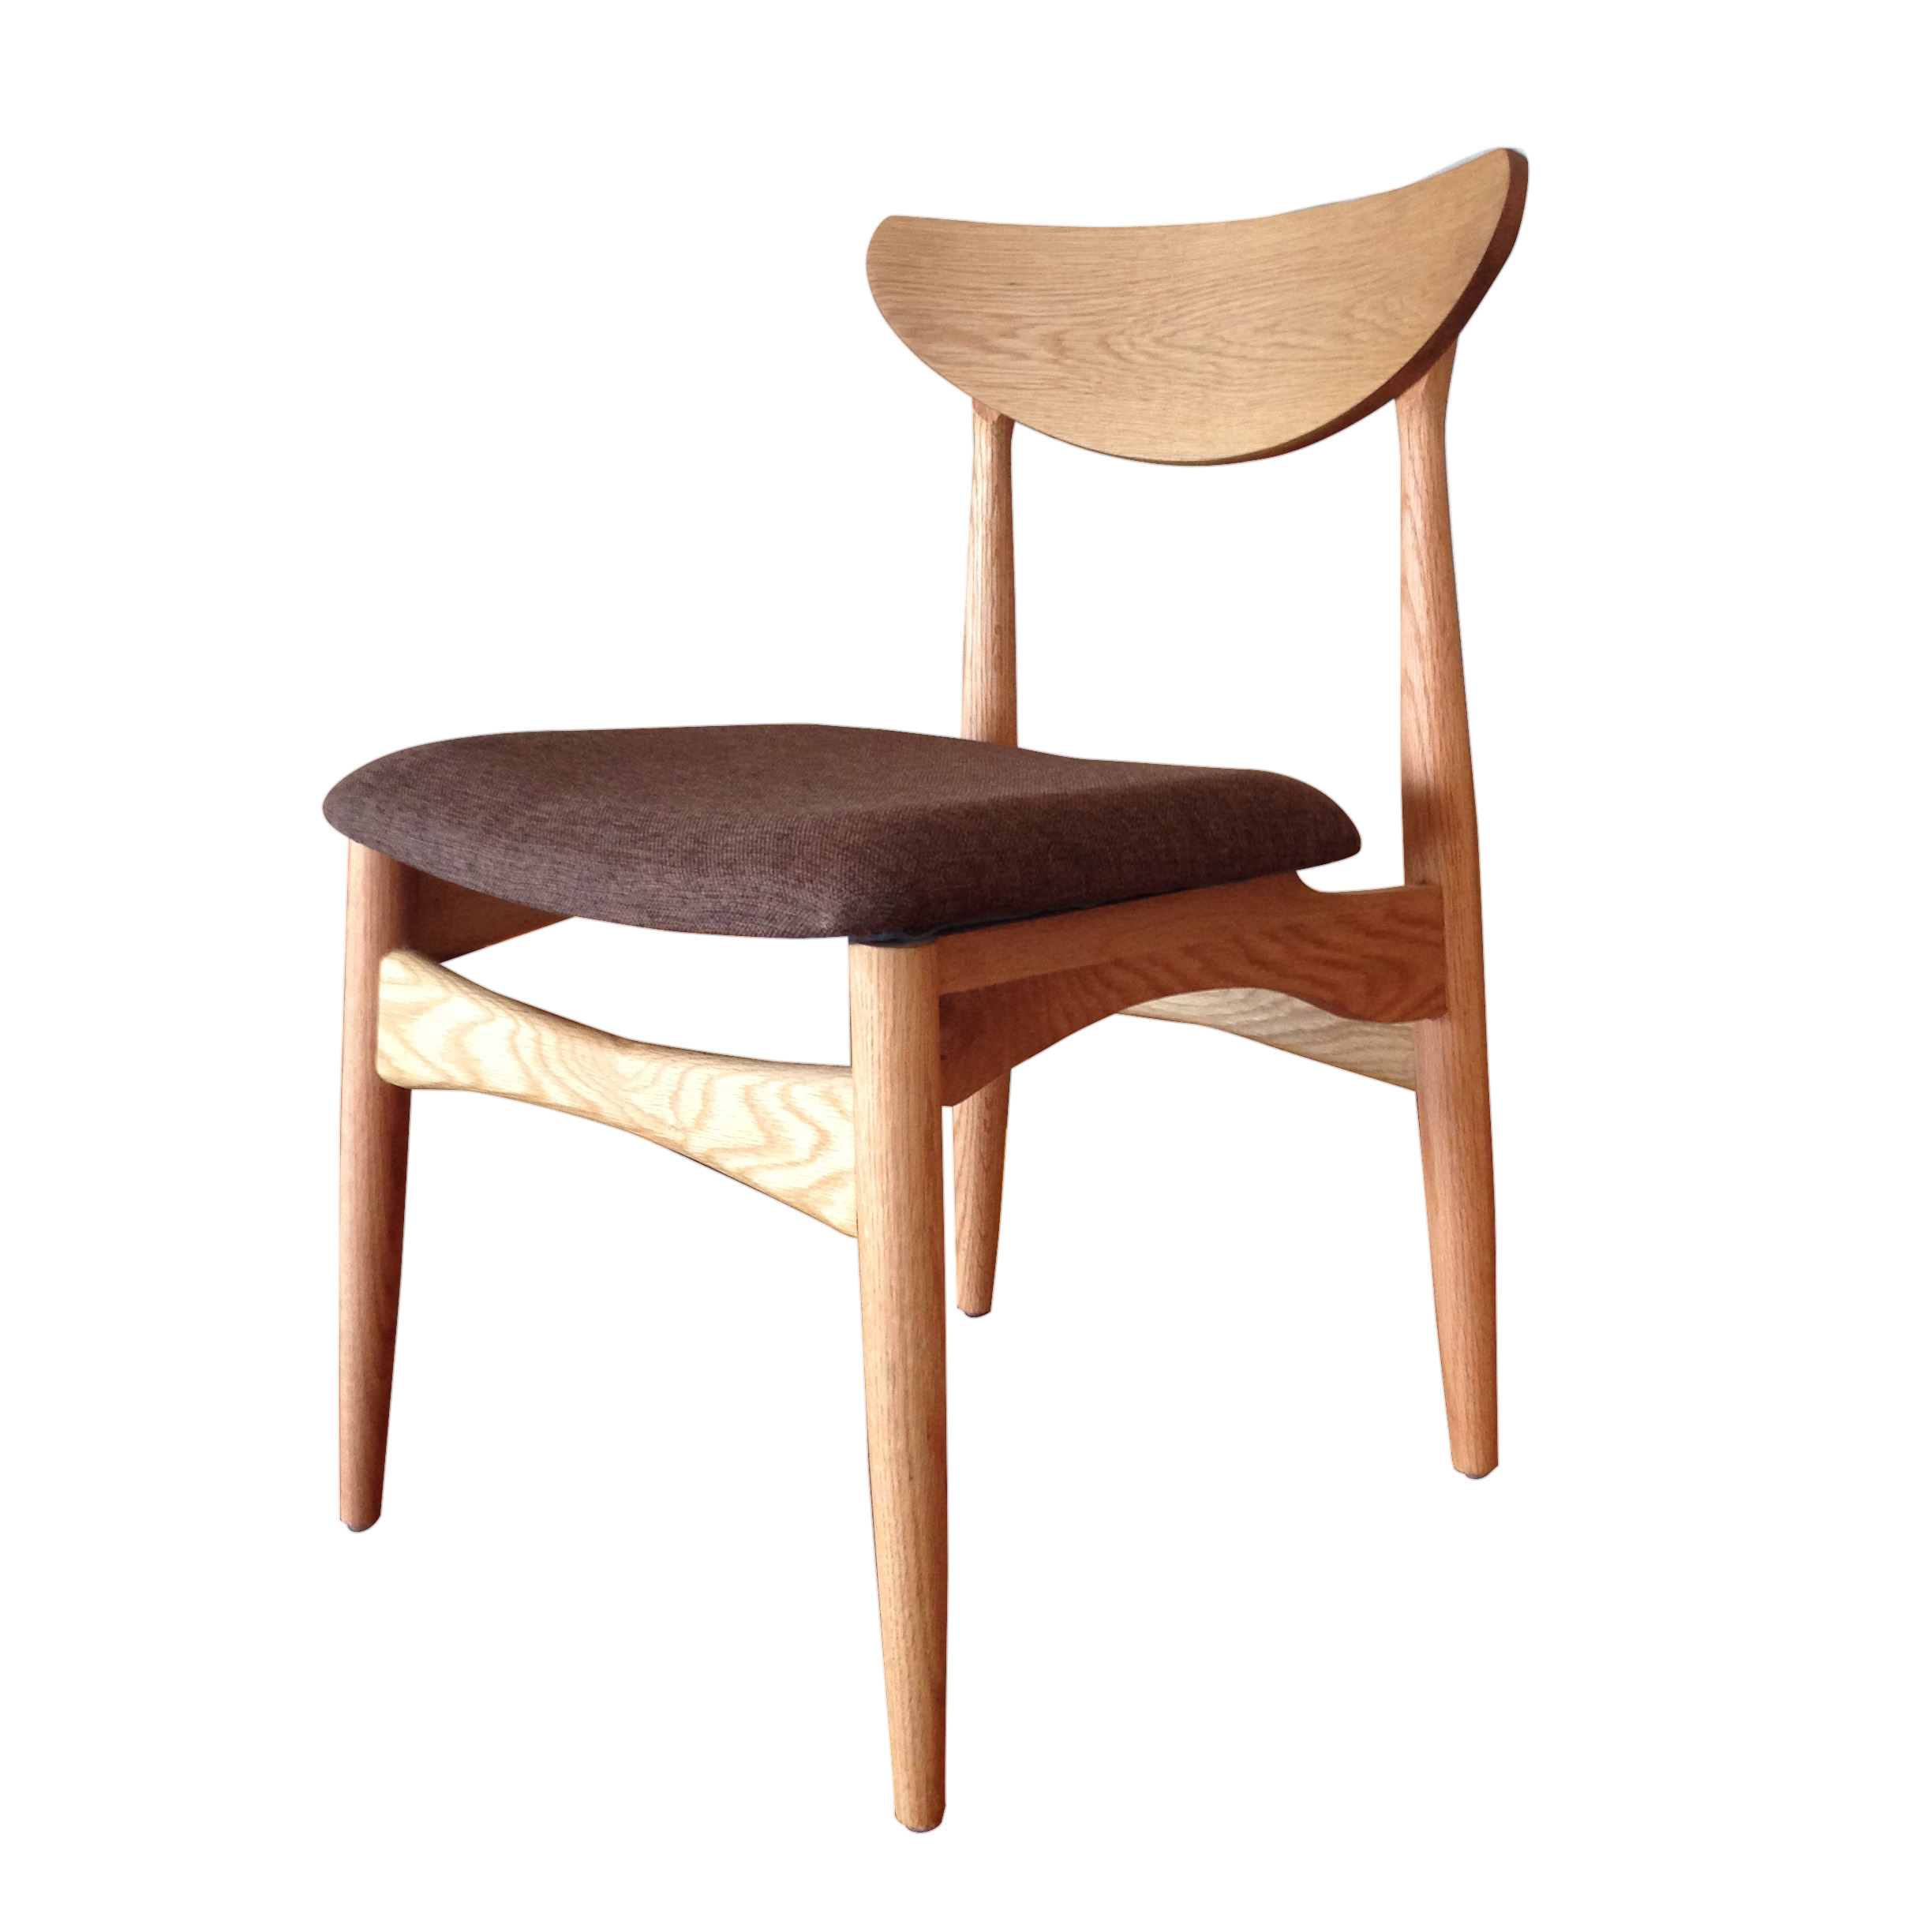 Image of: Small Unfinished Wood Dining Chairs